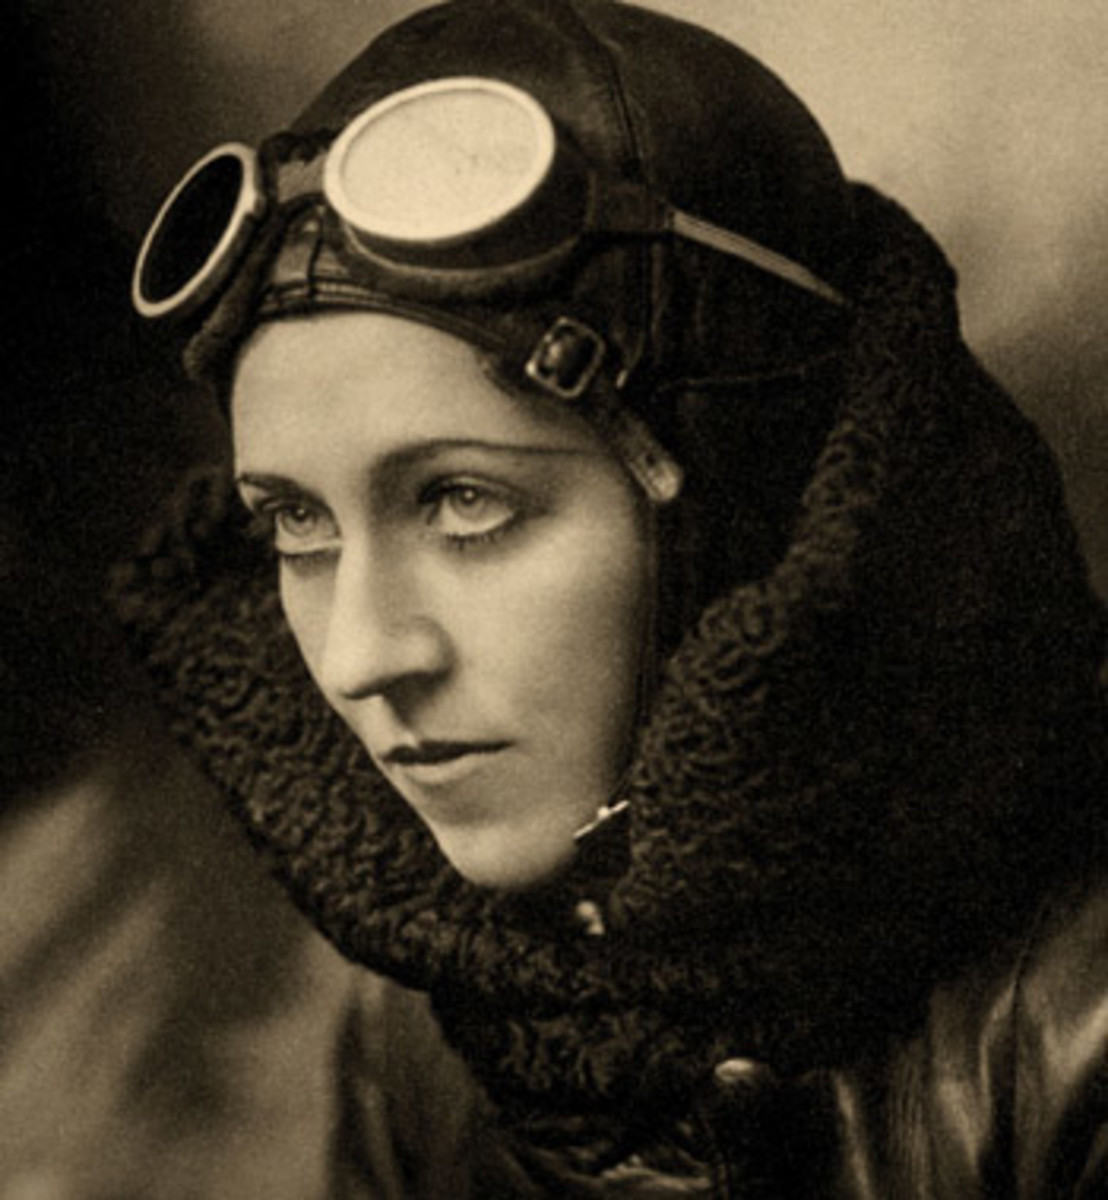 The Wings To Fly - a Story of a Female Pilot in World War Two